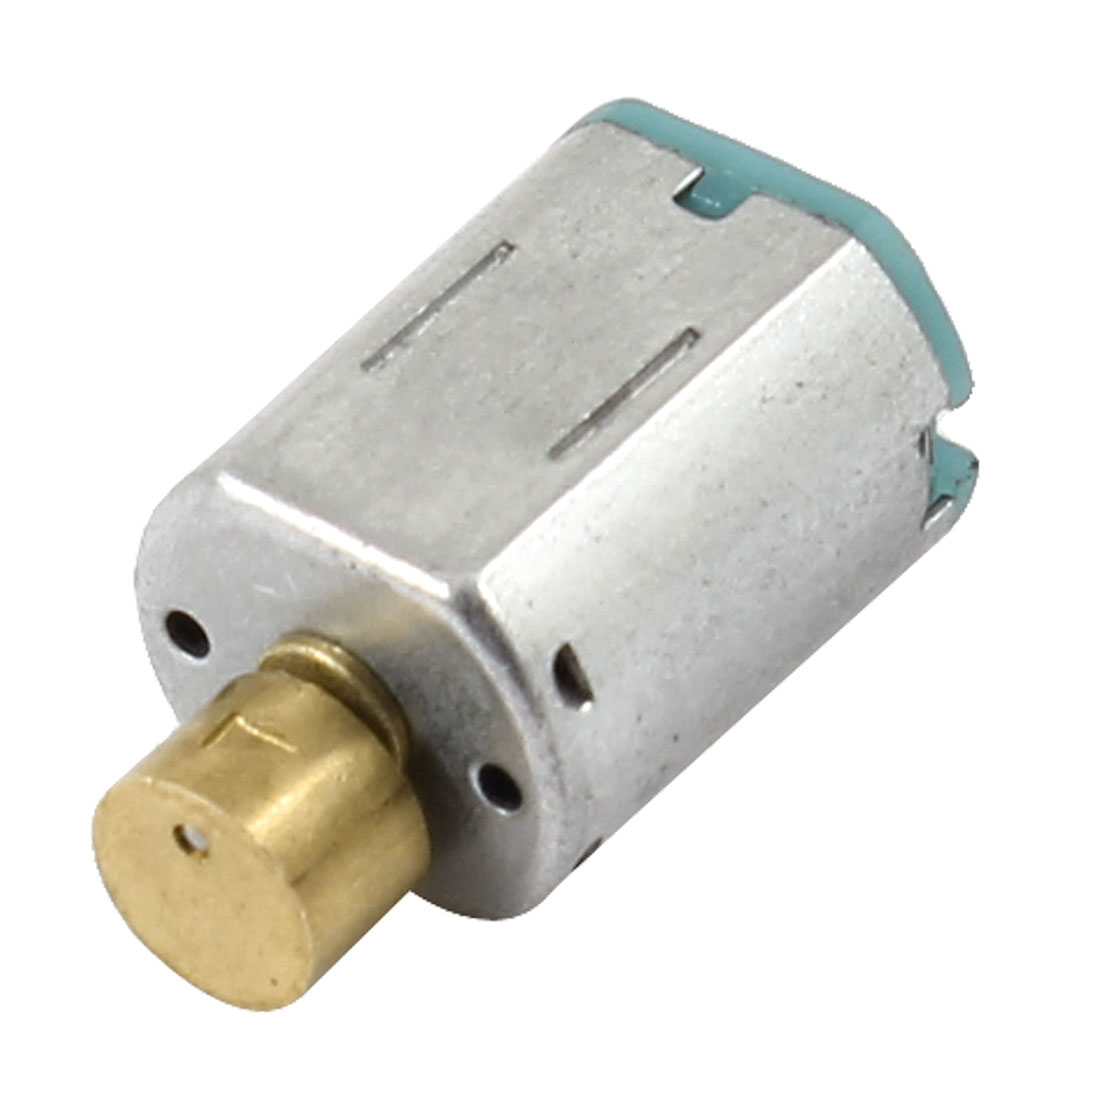 DC 3-4V 5000RPM Mini Vibrating Vibration Motor